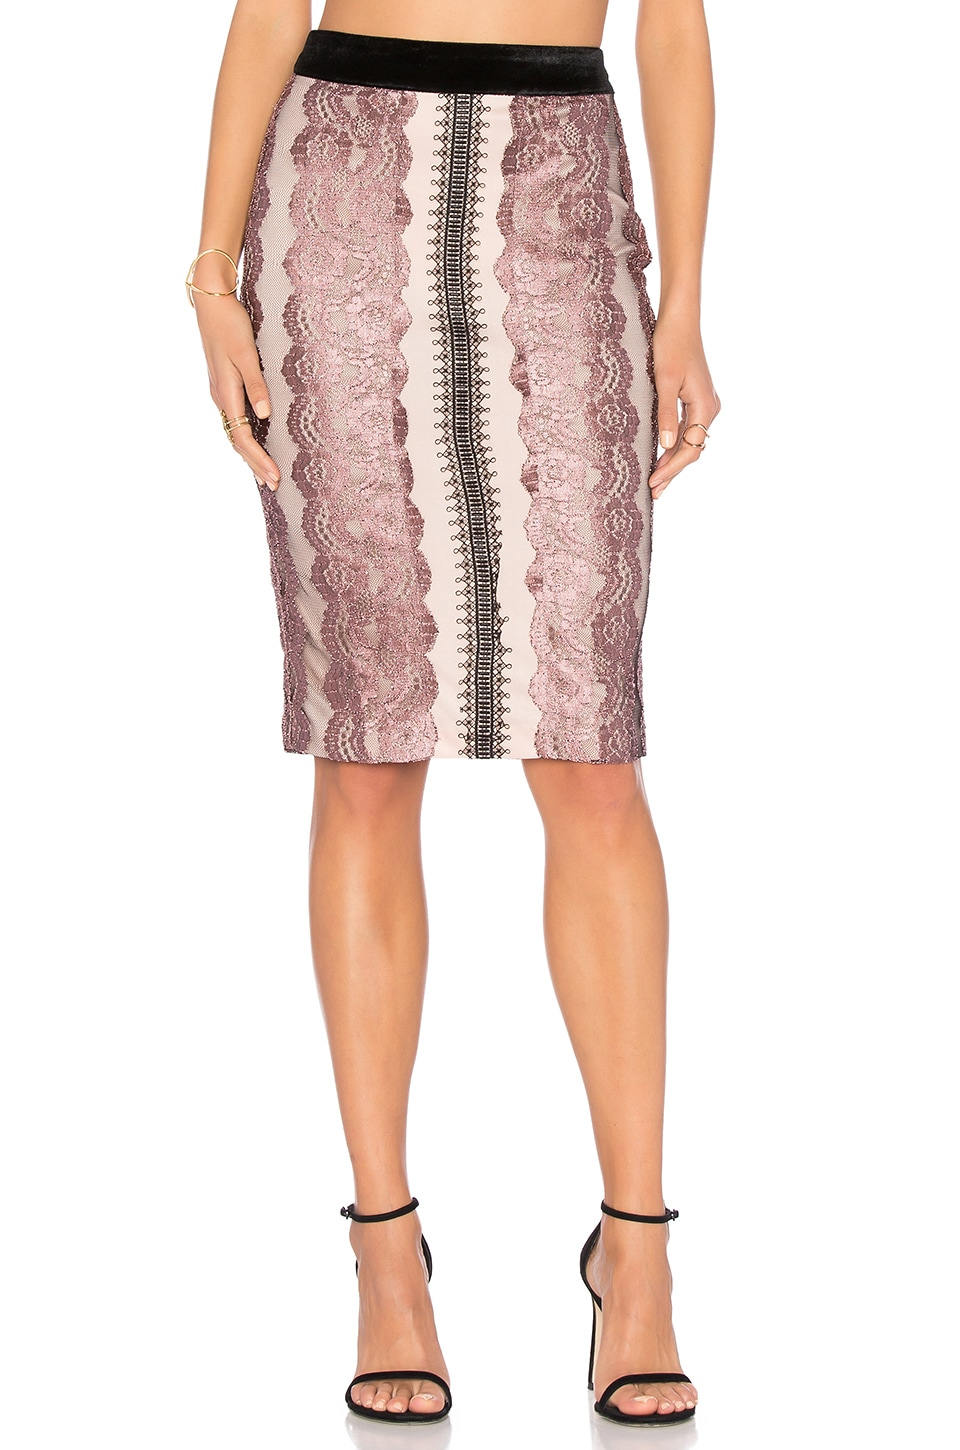 Lace Midi Skirt by Endless Rose